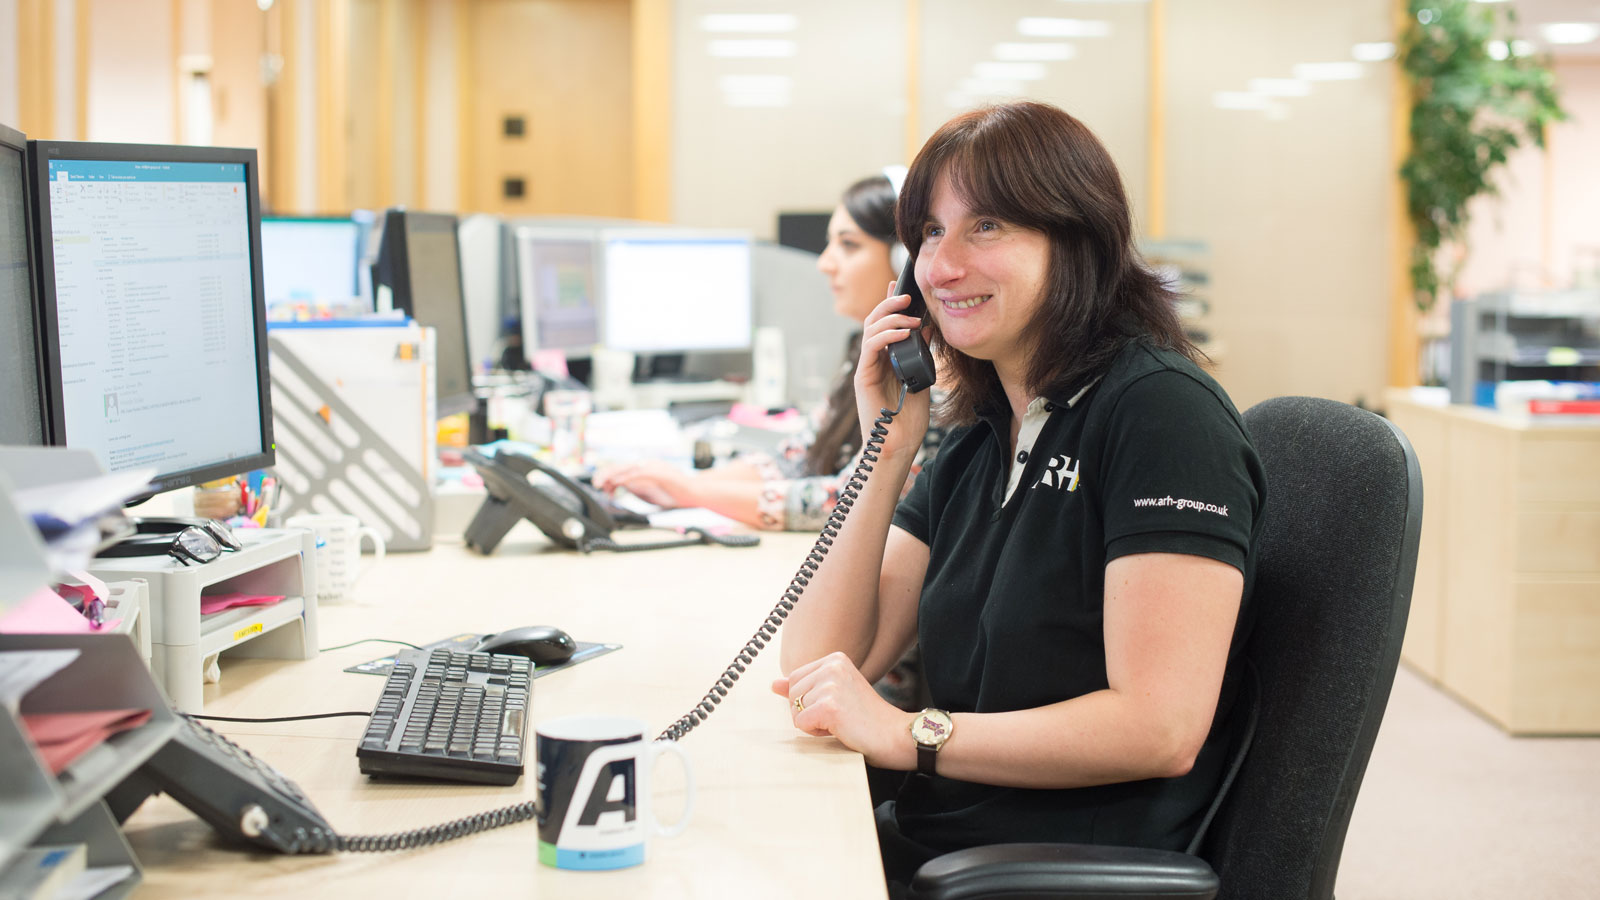 The ARH Group is dedicated to delivering first-class customer service